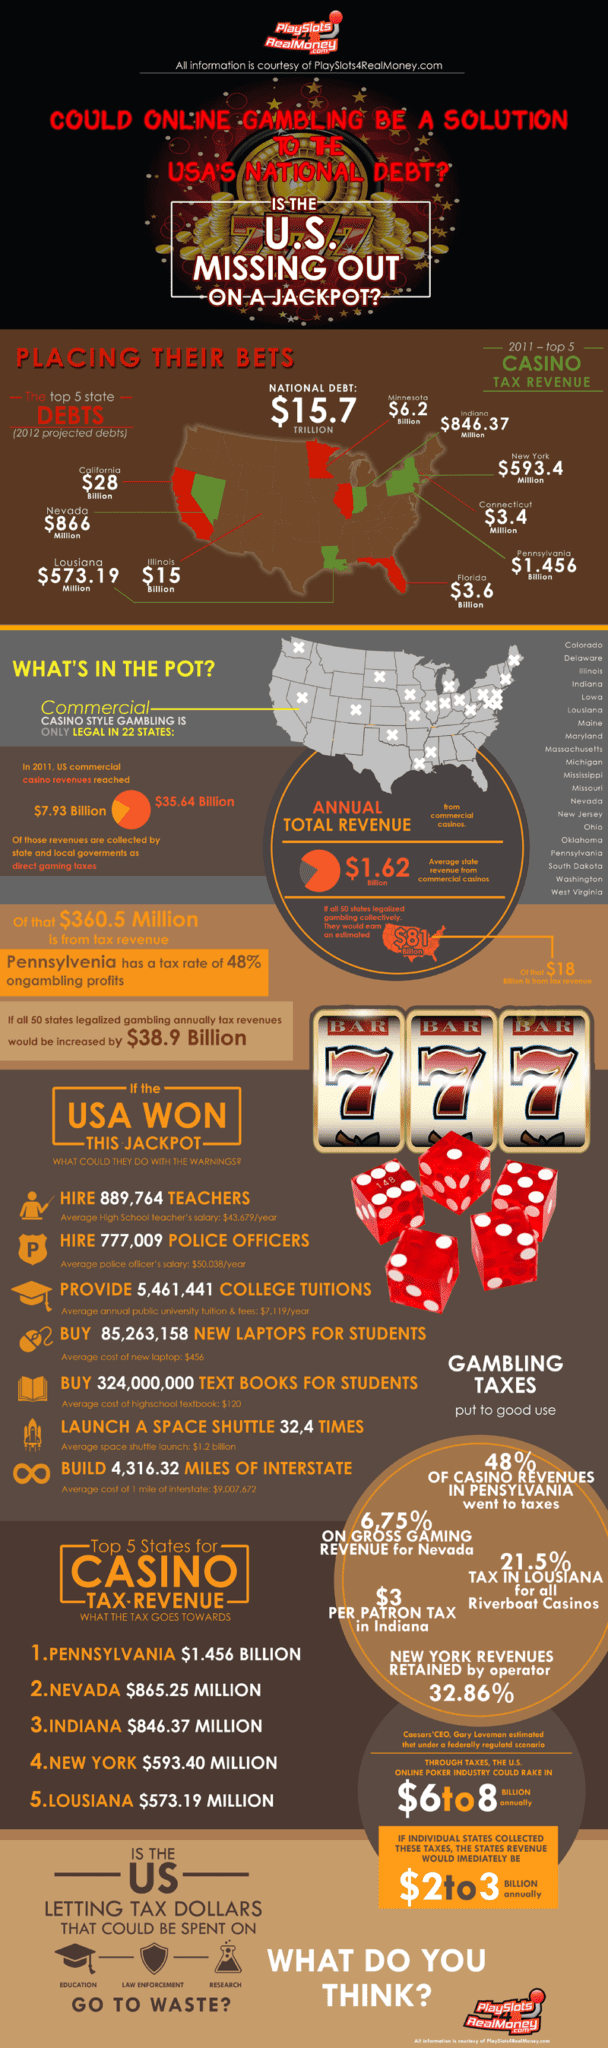 us casino online real money